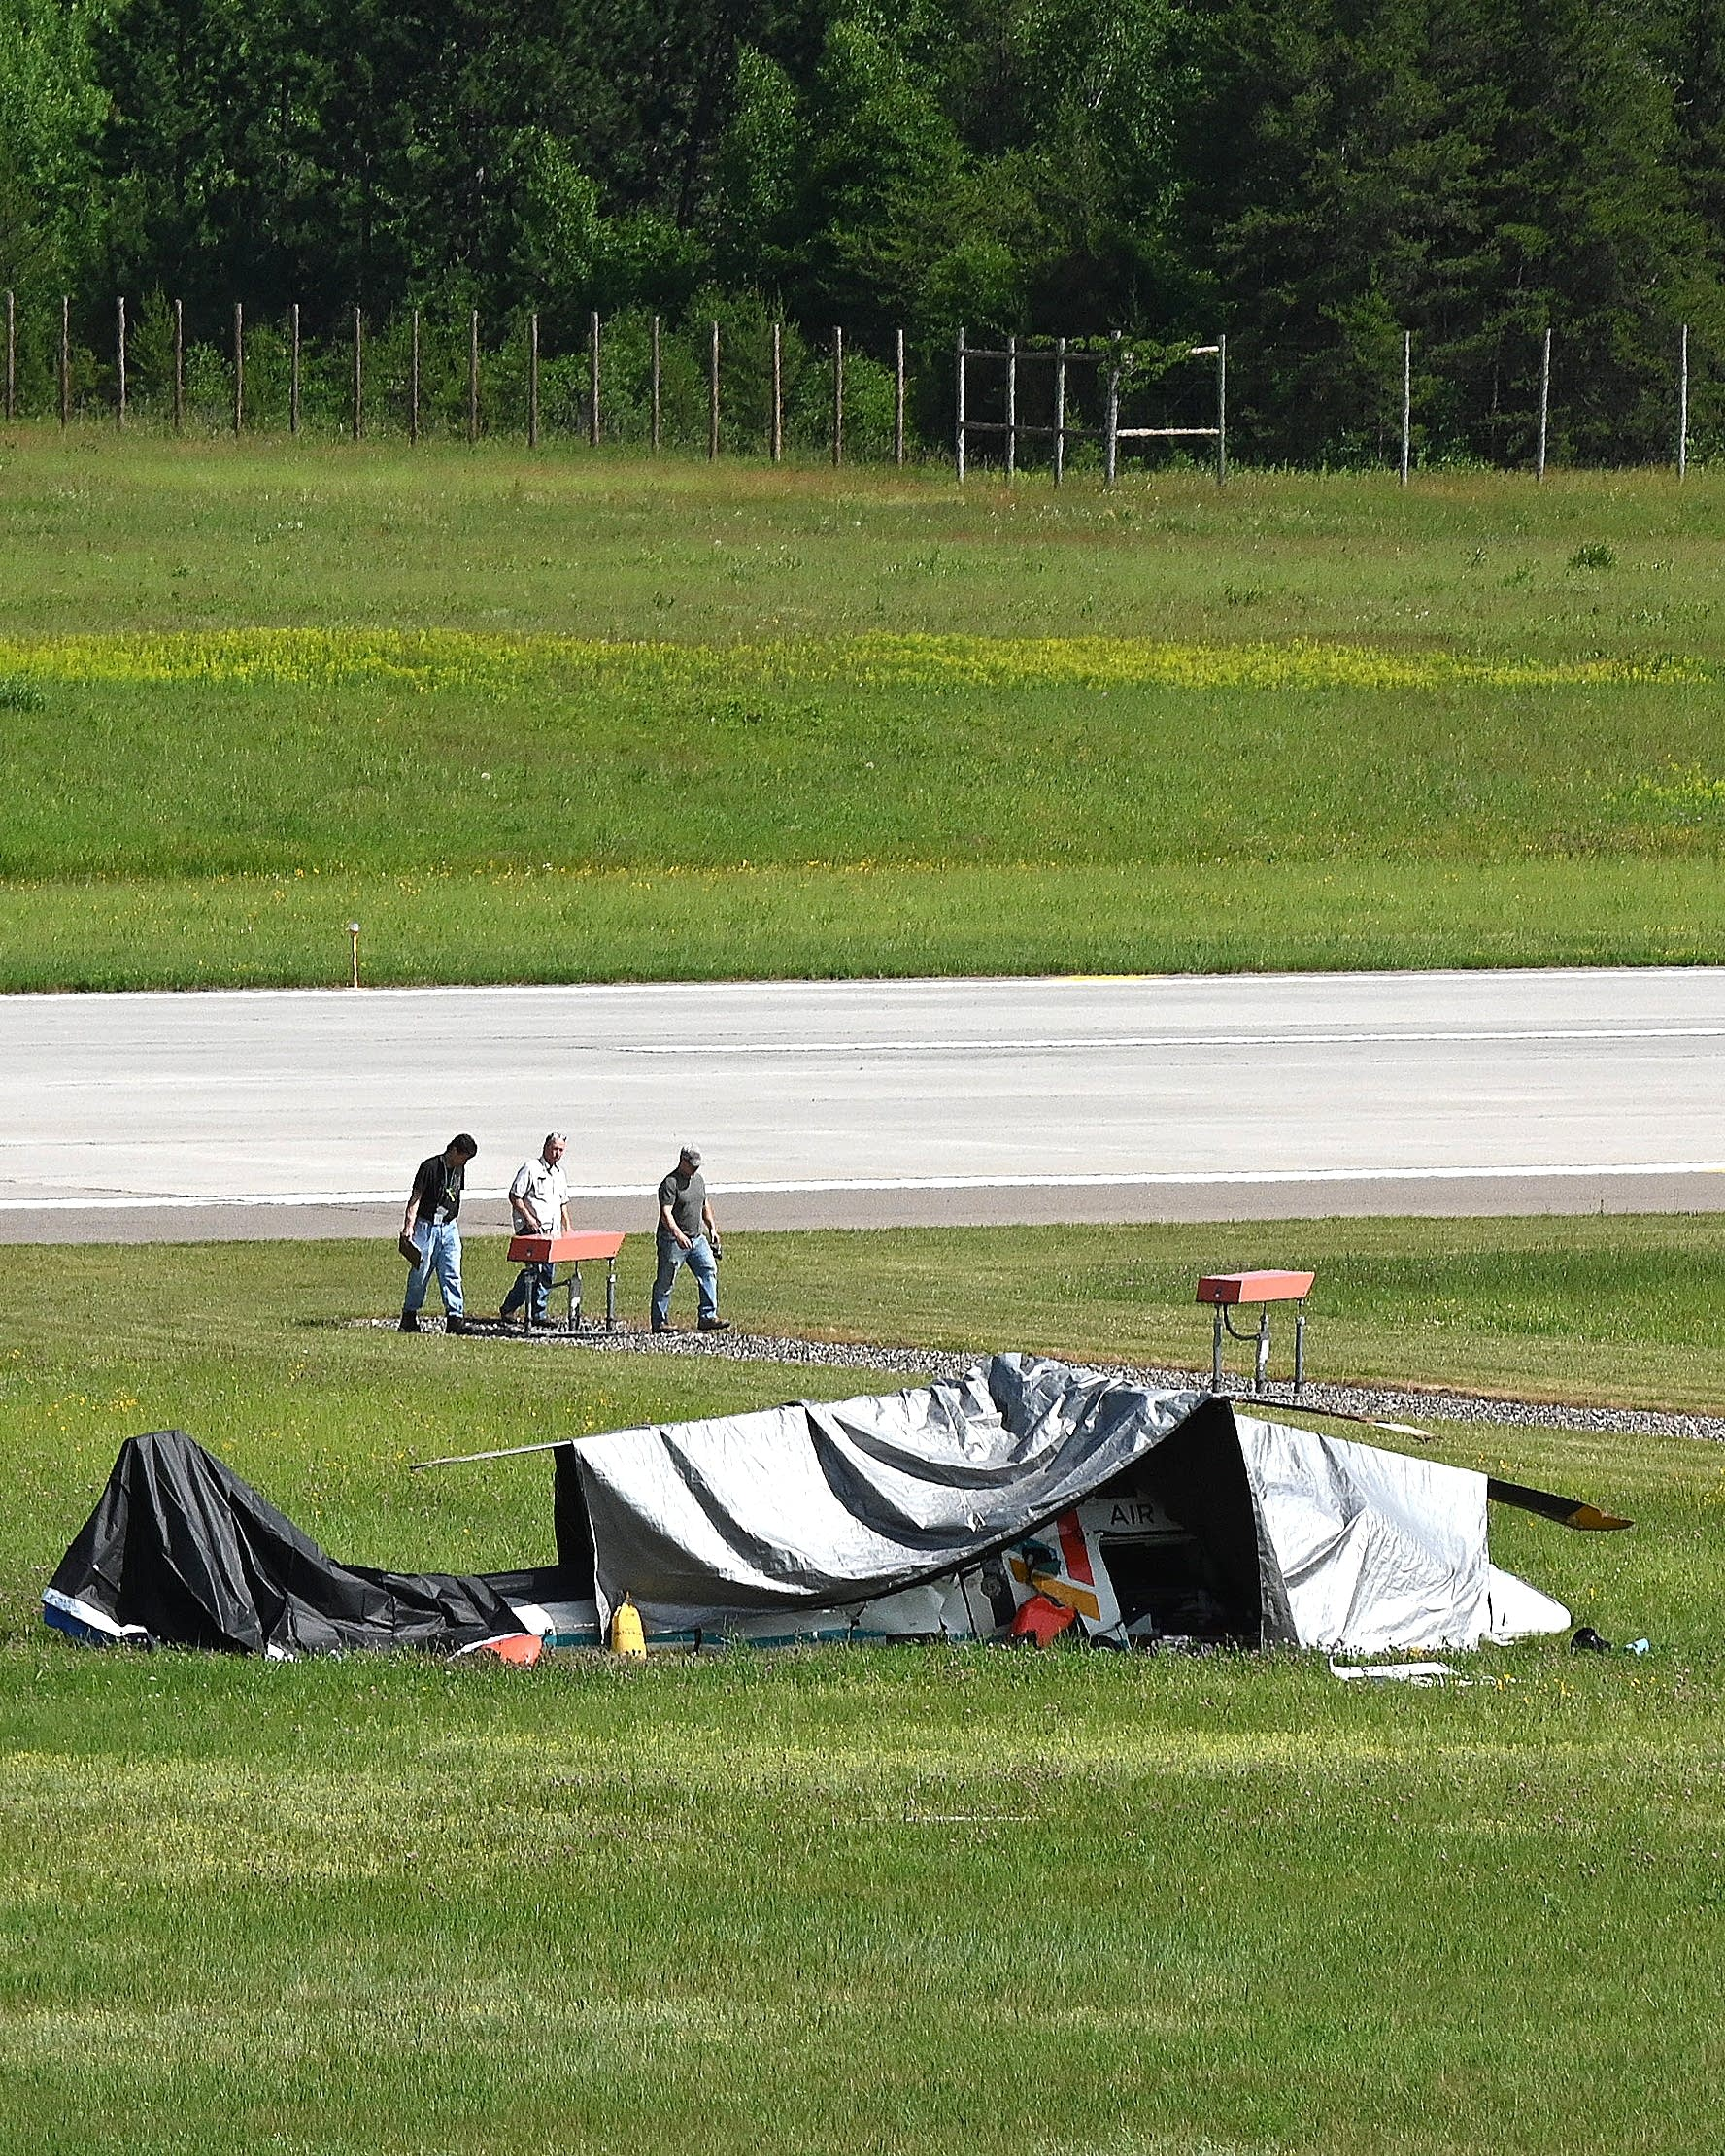 Authorities ID victims of medical helicopter crash in Brainerd | MPR